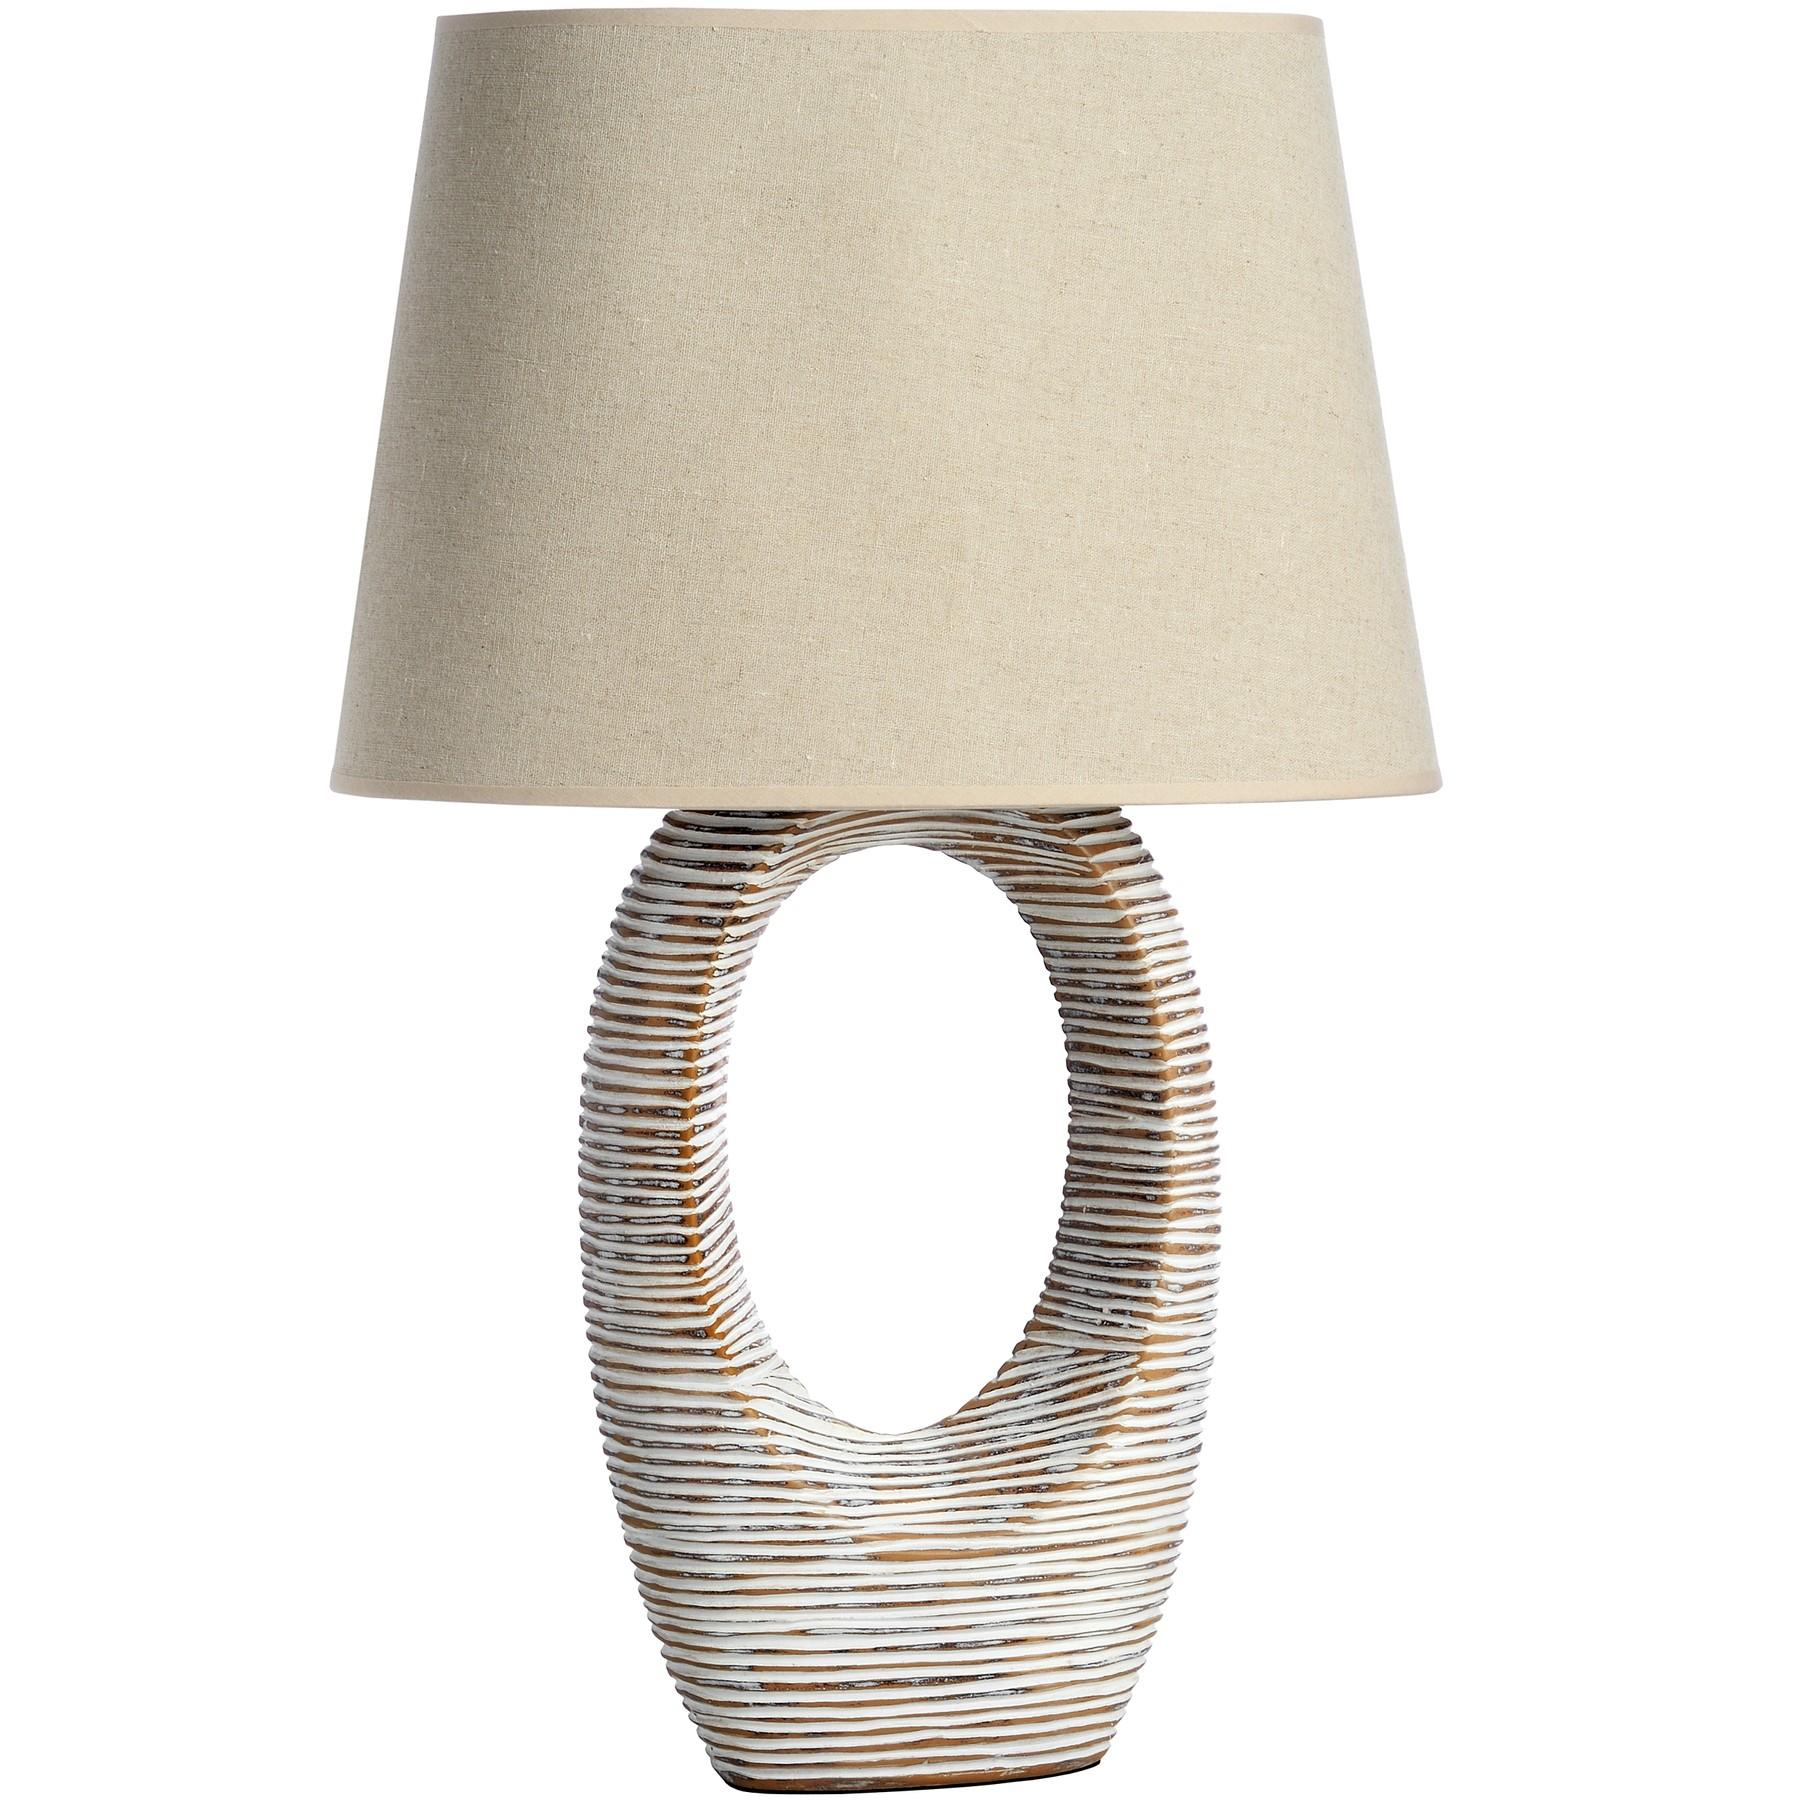 Antique Contemporary Table Lamp Shades